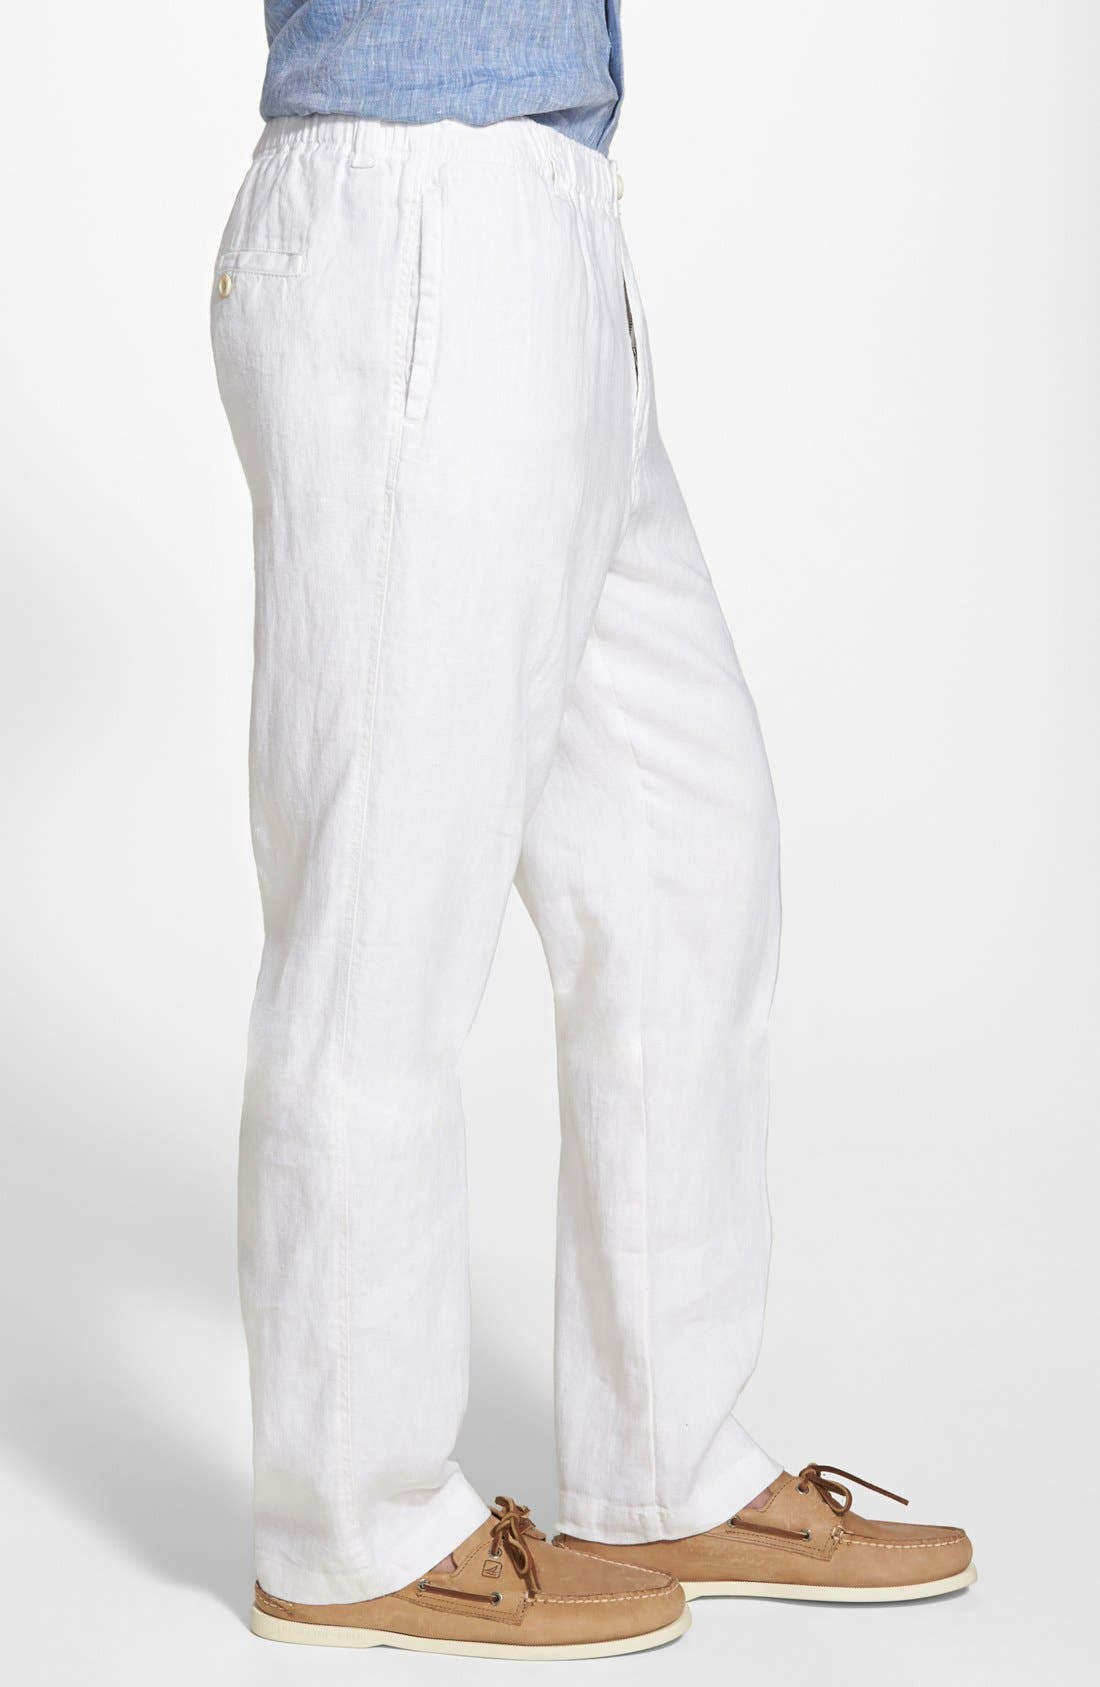 New Linen on the Beach Linen Pants,                             Alternate thumbnail 21, color,